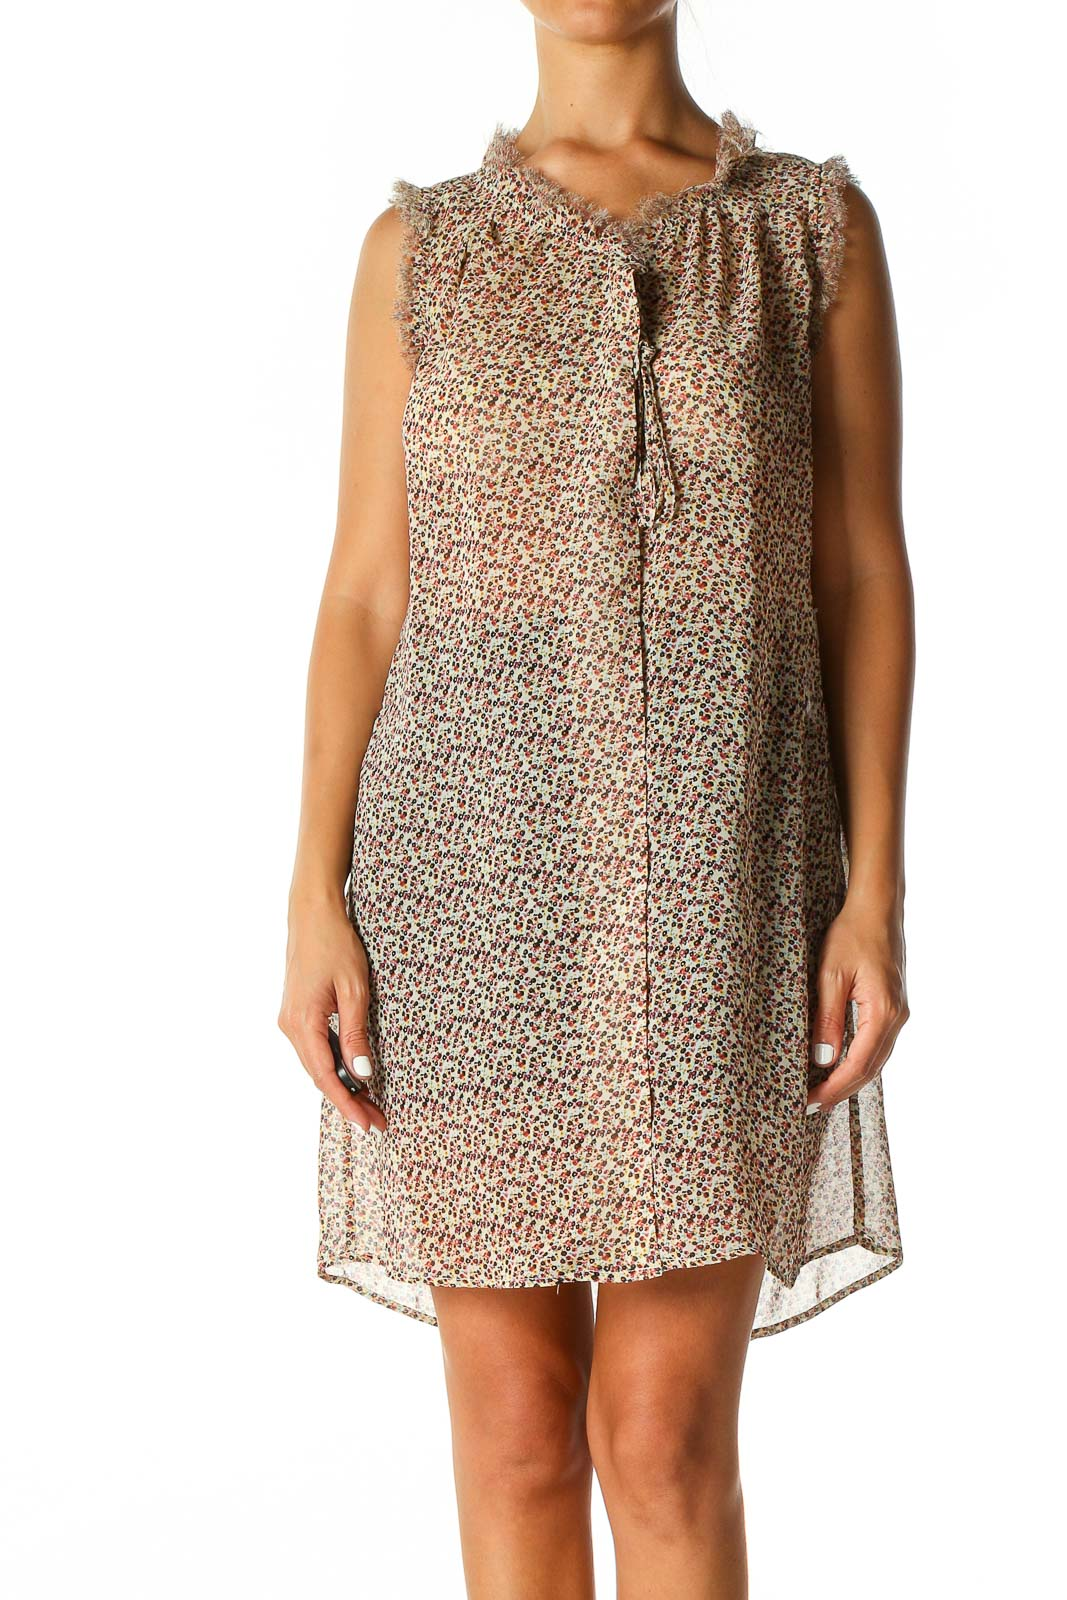 Beige Object Print Chic A-Line Dress Front